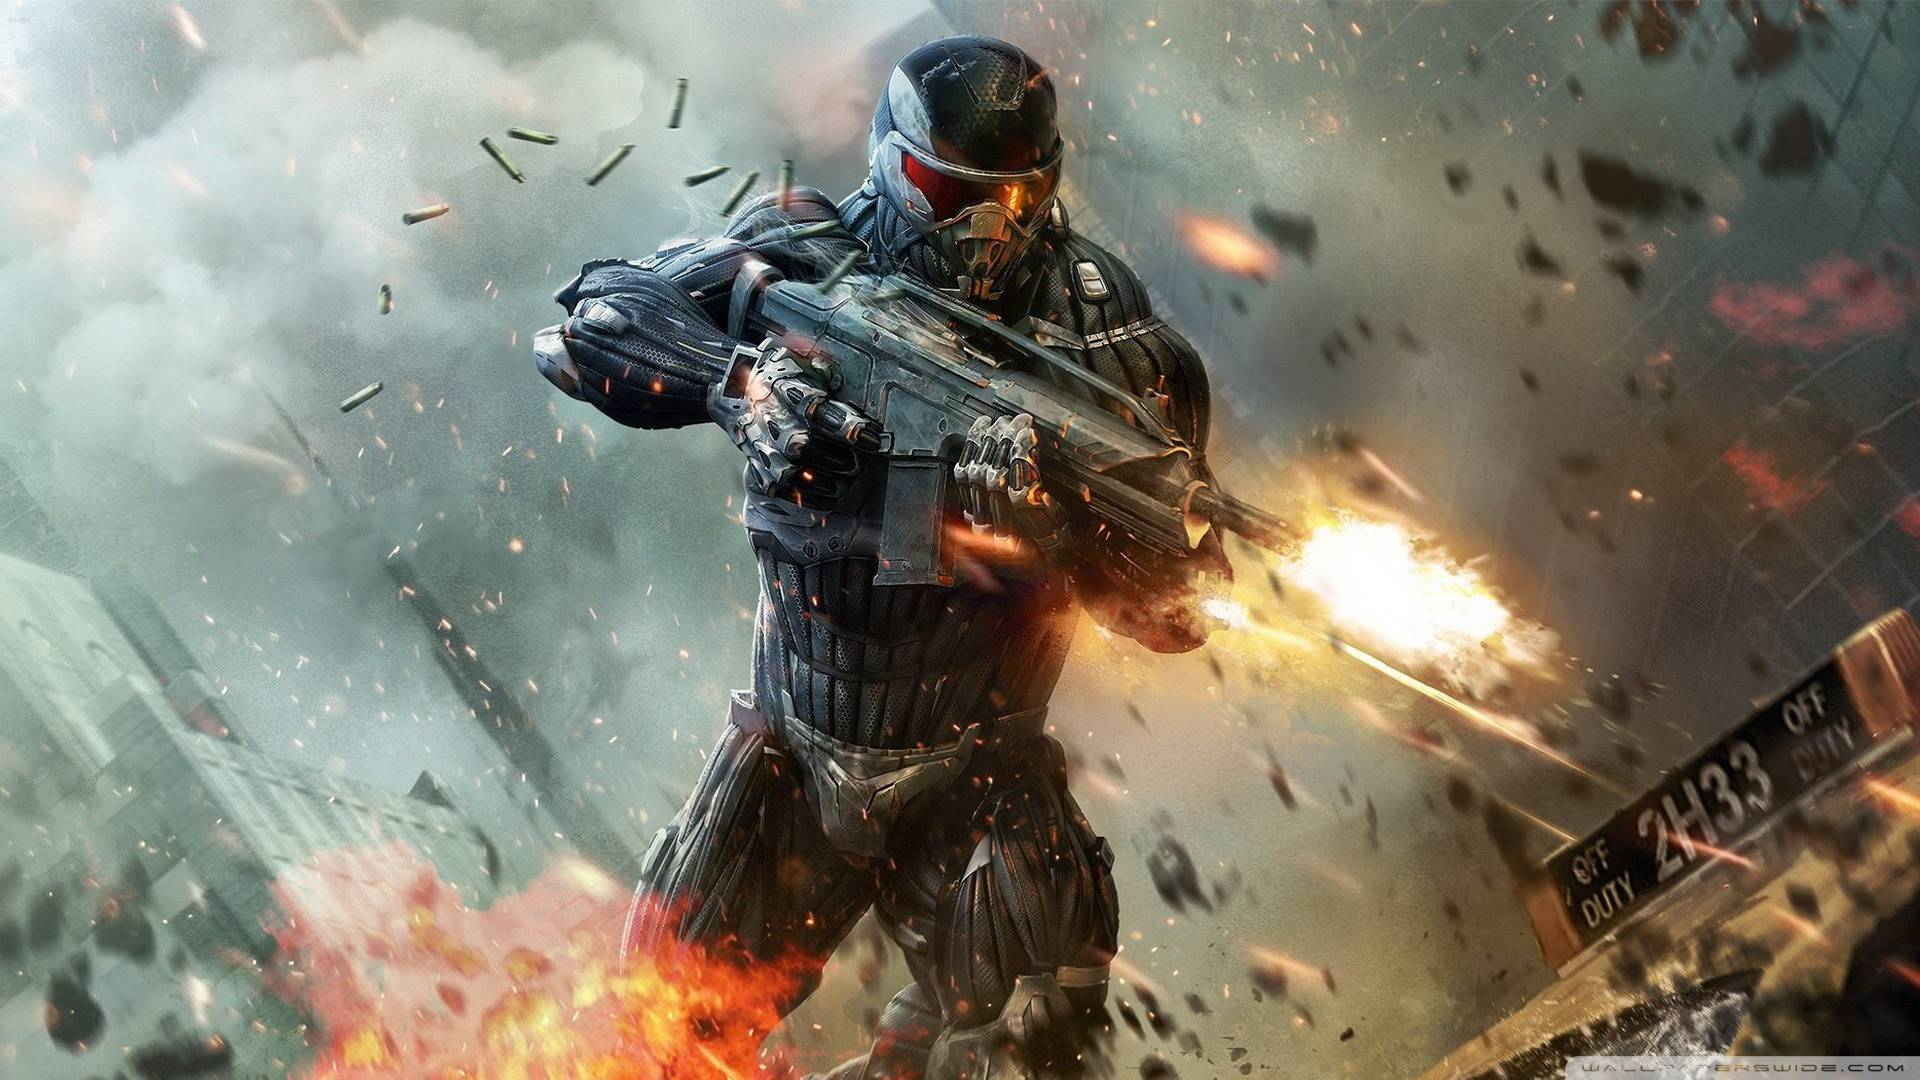 Crysis 2 Wallpapers in full 1080P HD GamingBoltcom Video Game 1920x1080